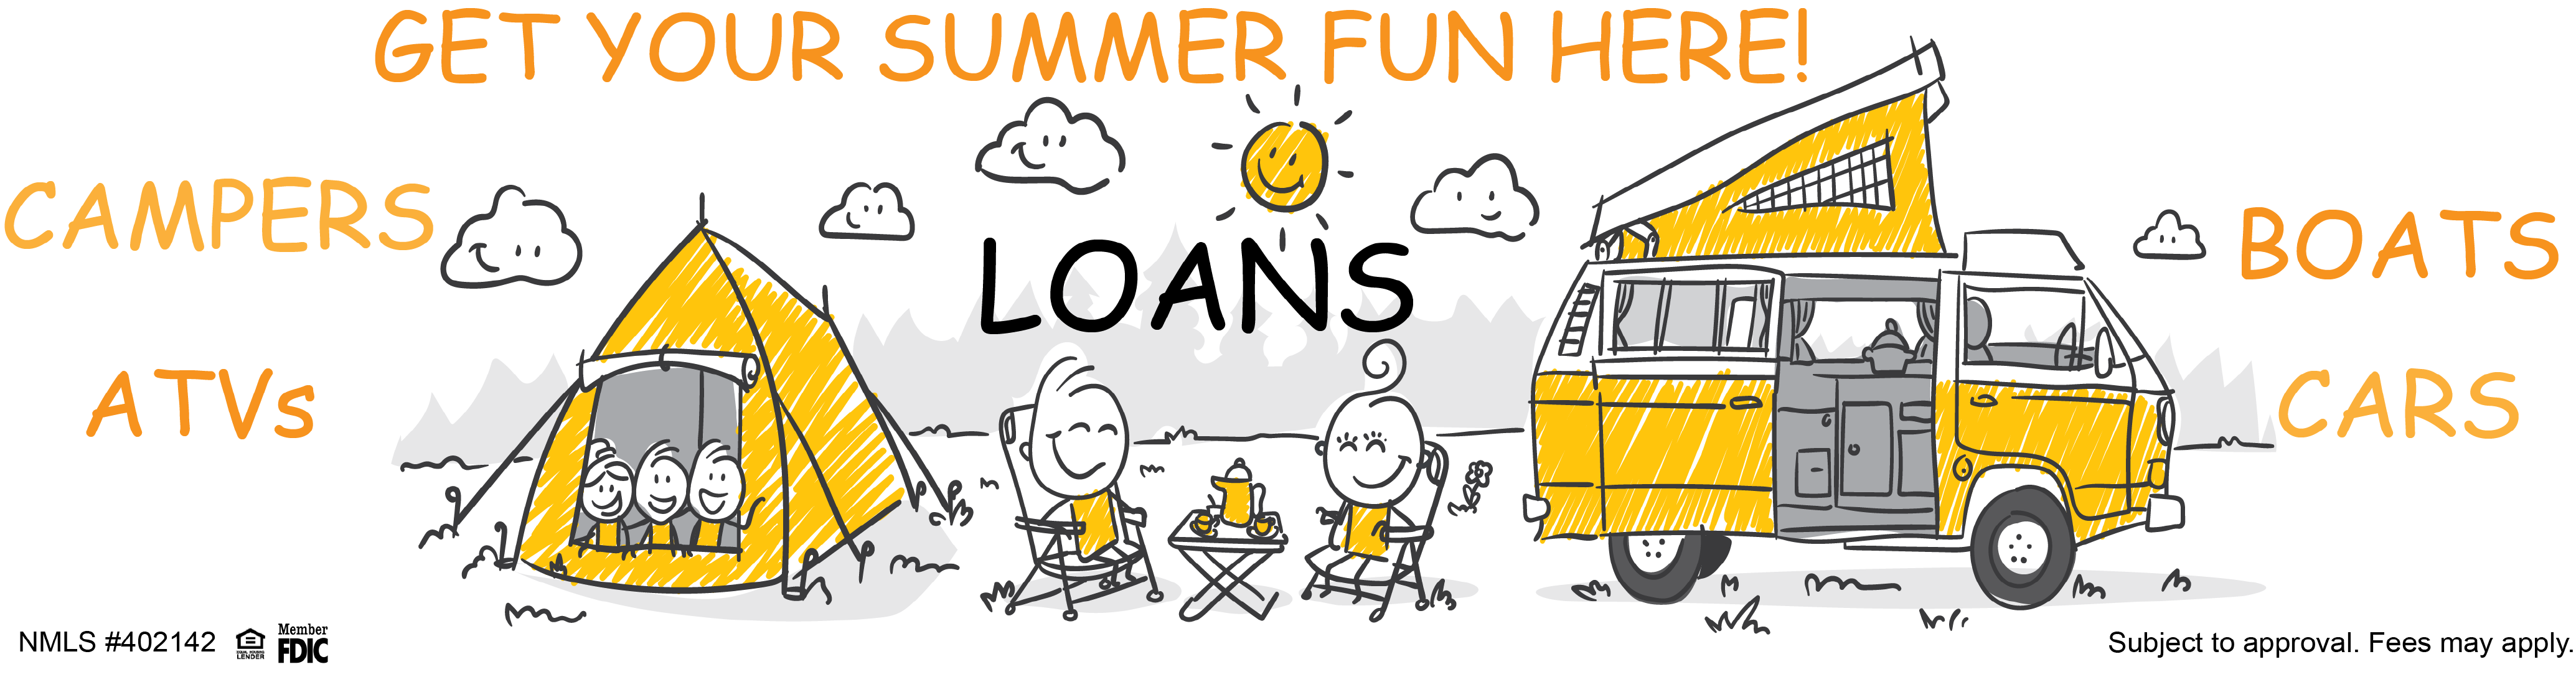 Cartoon of a family camping. Summer fun loans for recreational vehicles.